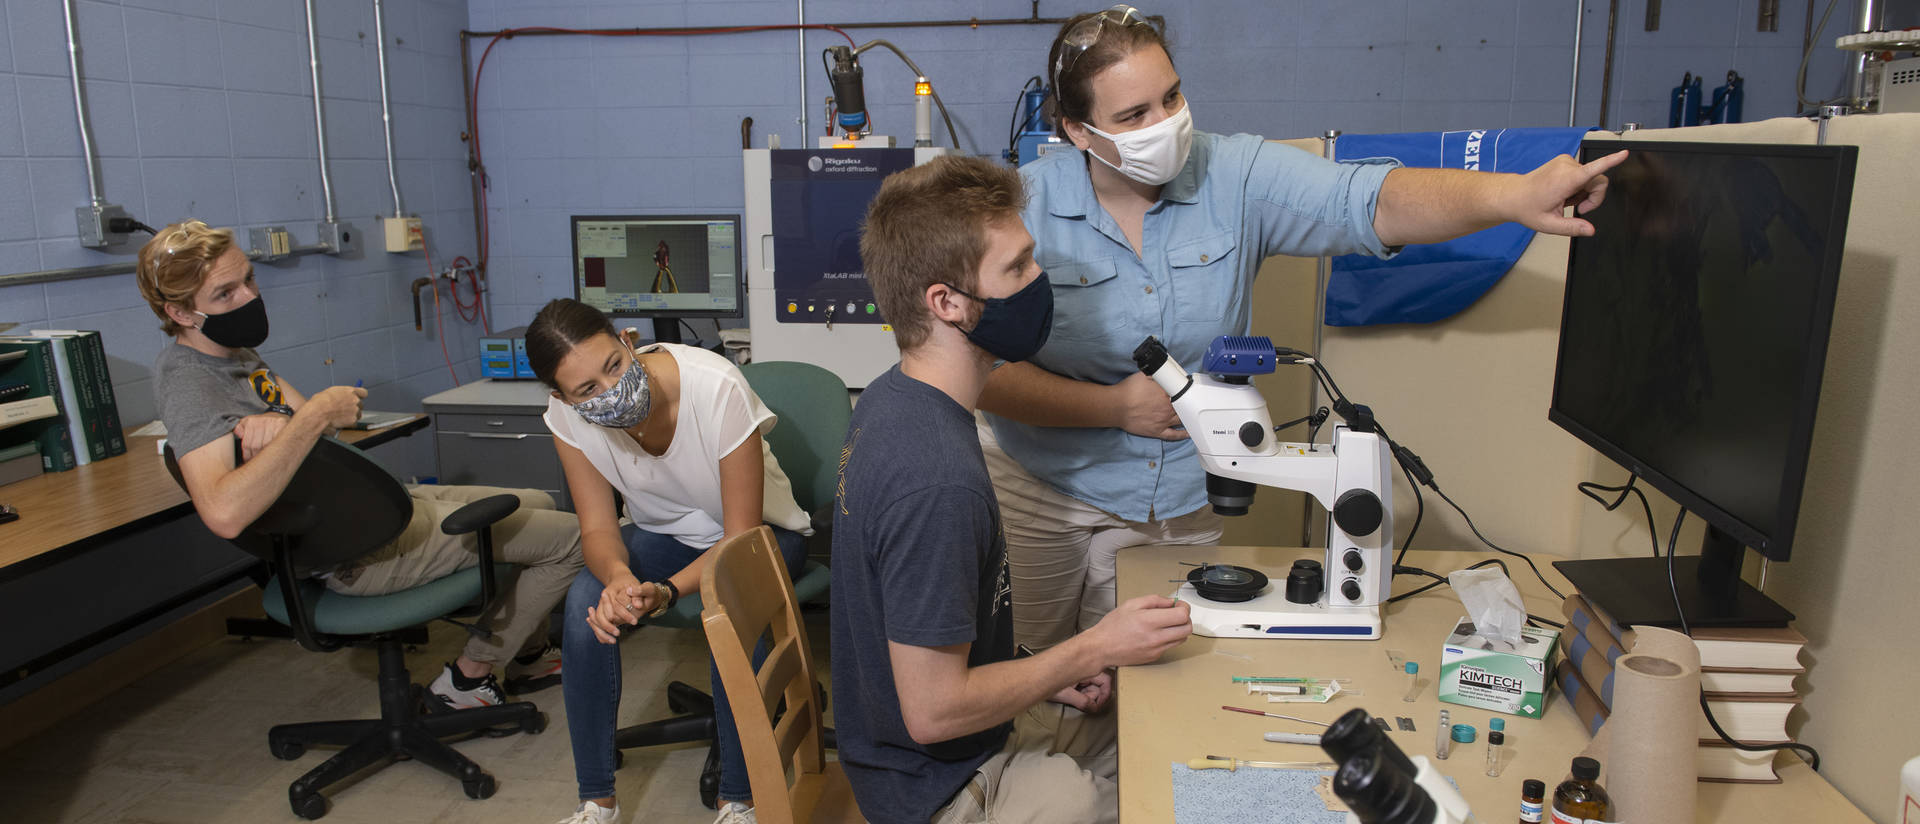 Students working on research this summer with Dr. Deidra Gerlach are using new high-end instrumentation secured through a grant from the National Science Foundation.